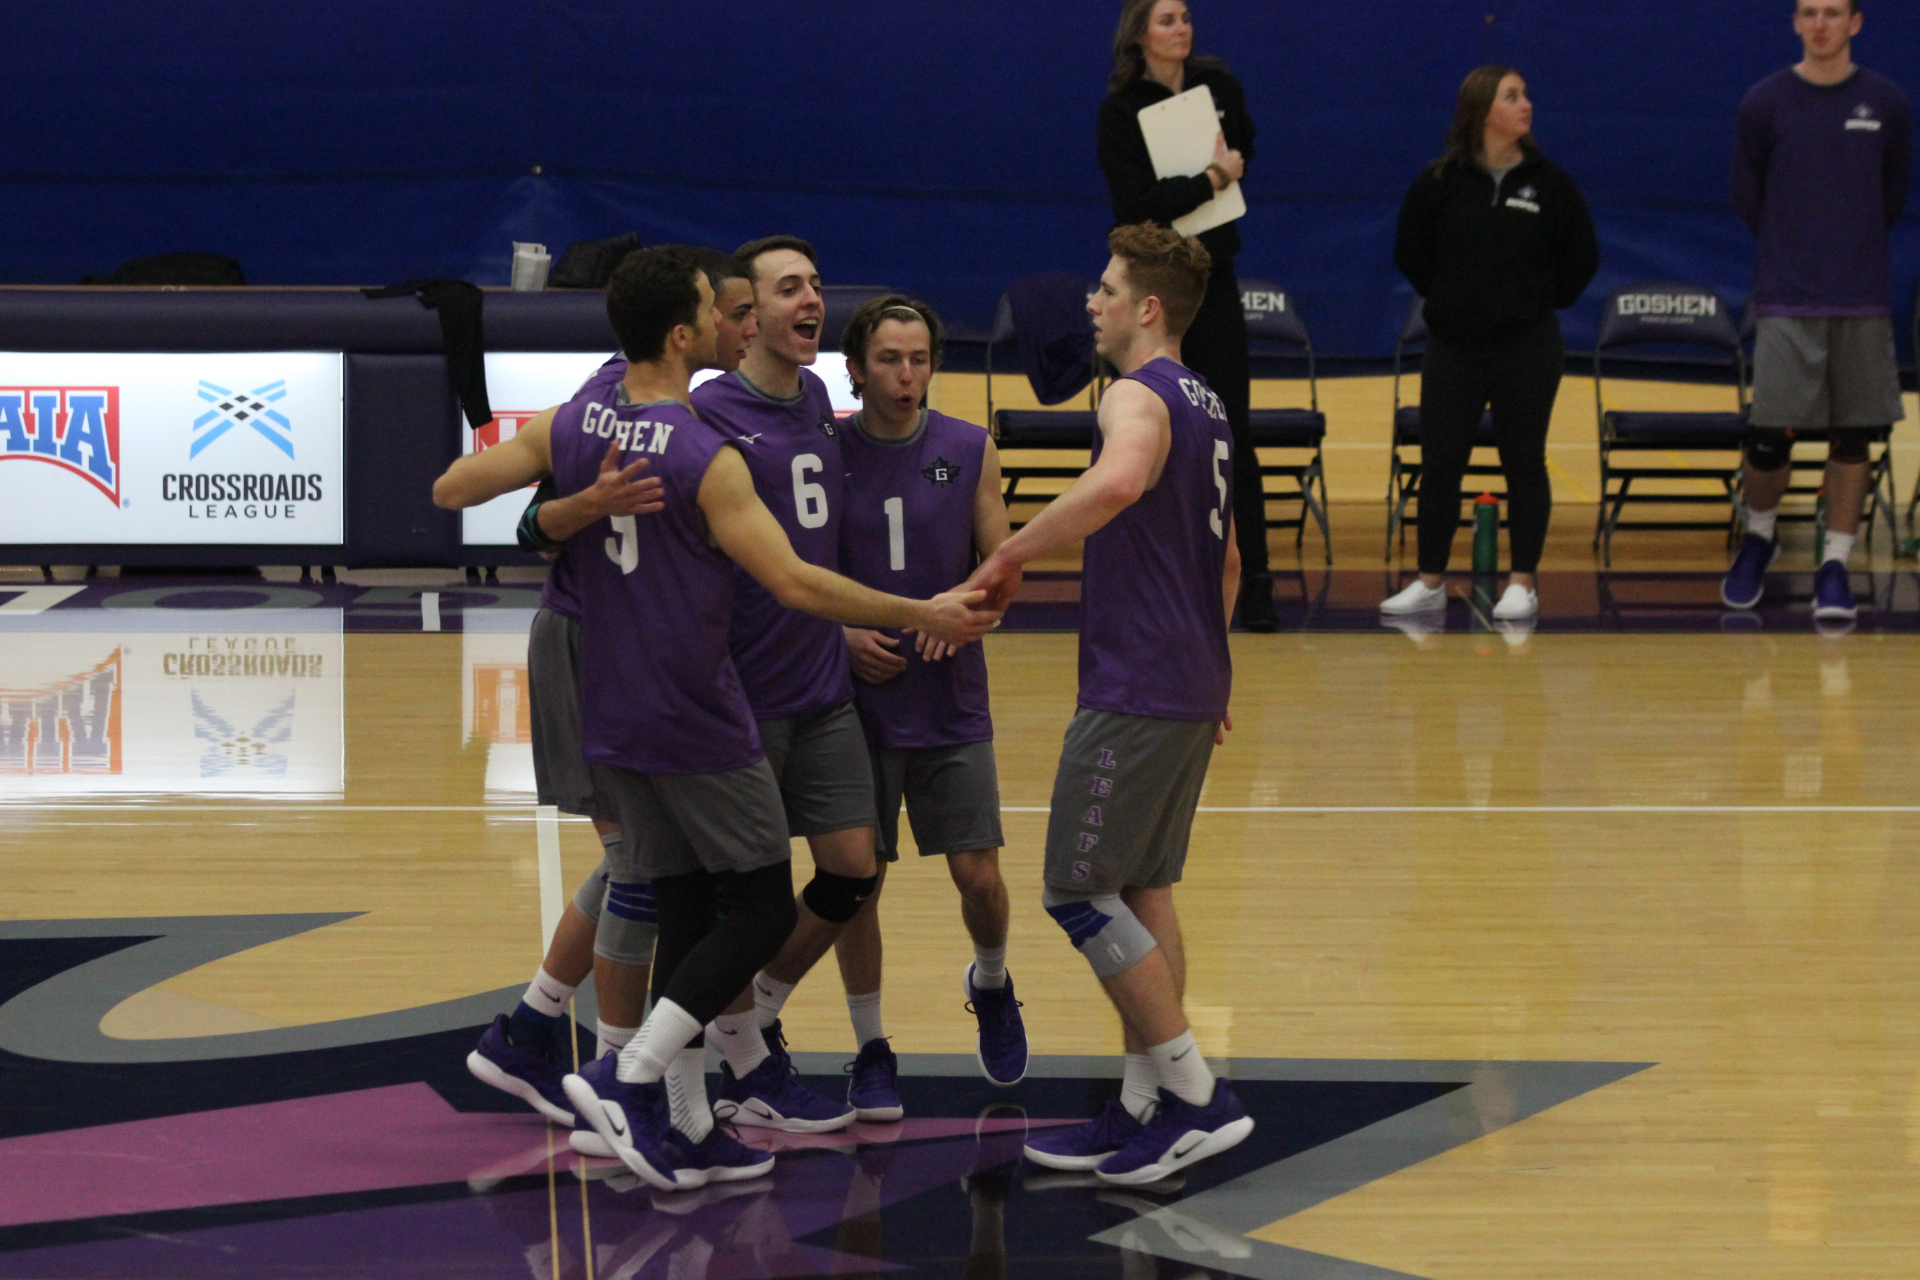 Four members of the Goshen men's volleyball team celebrate a winning point during a game